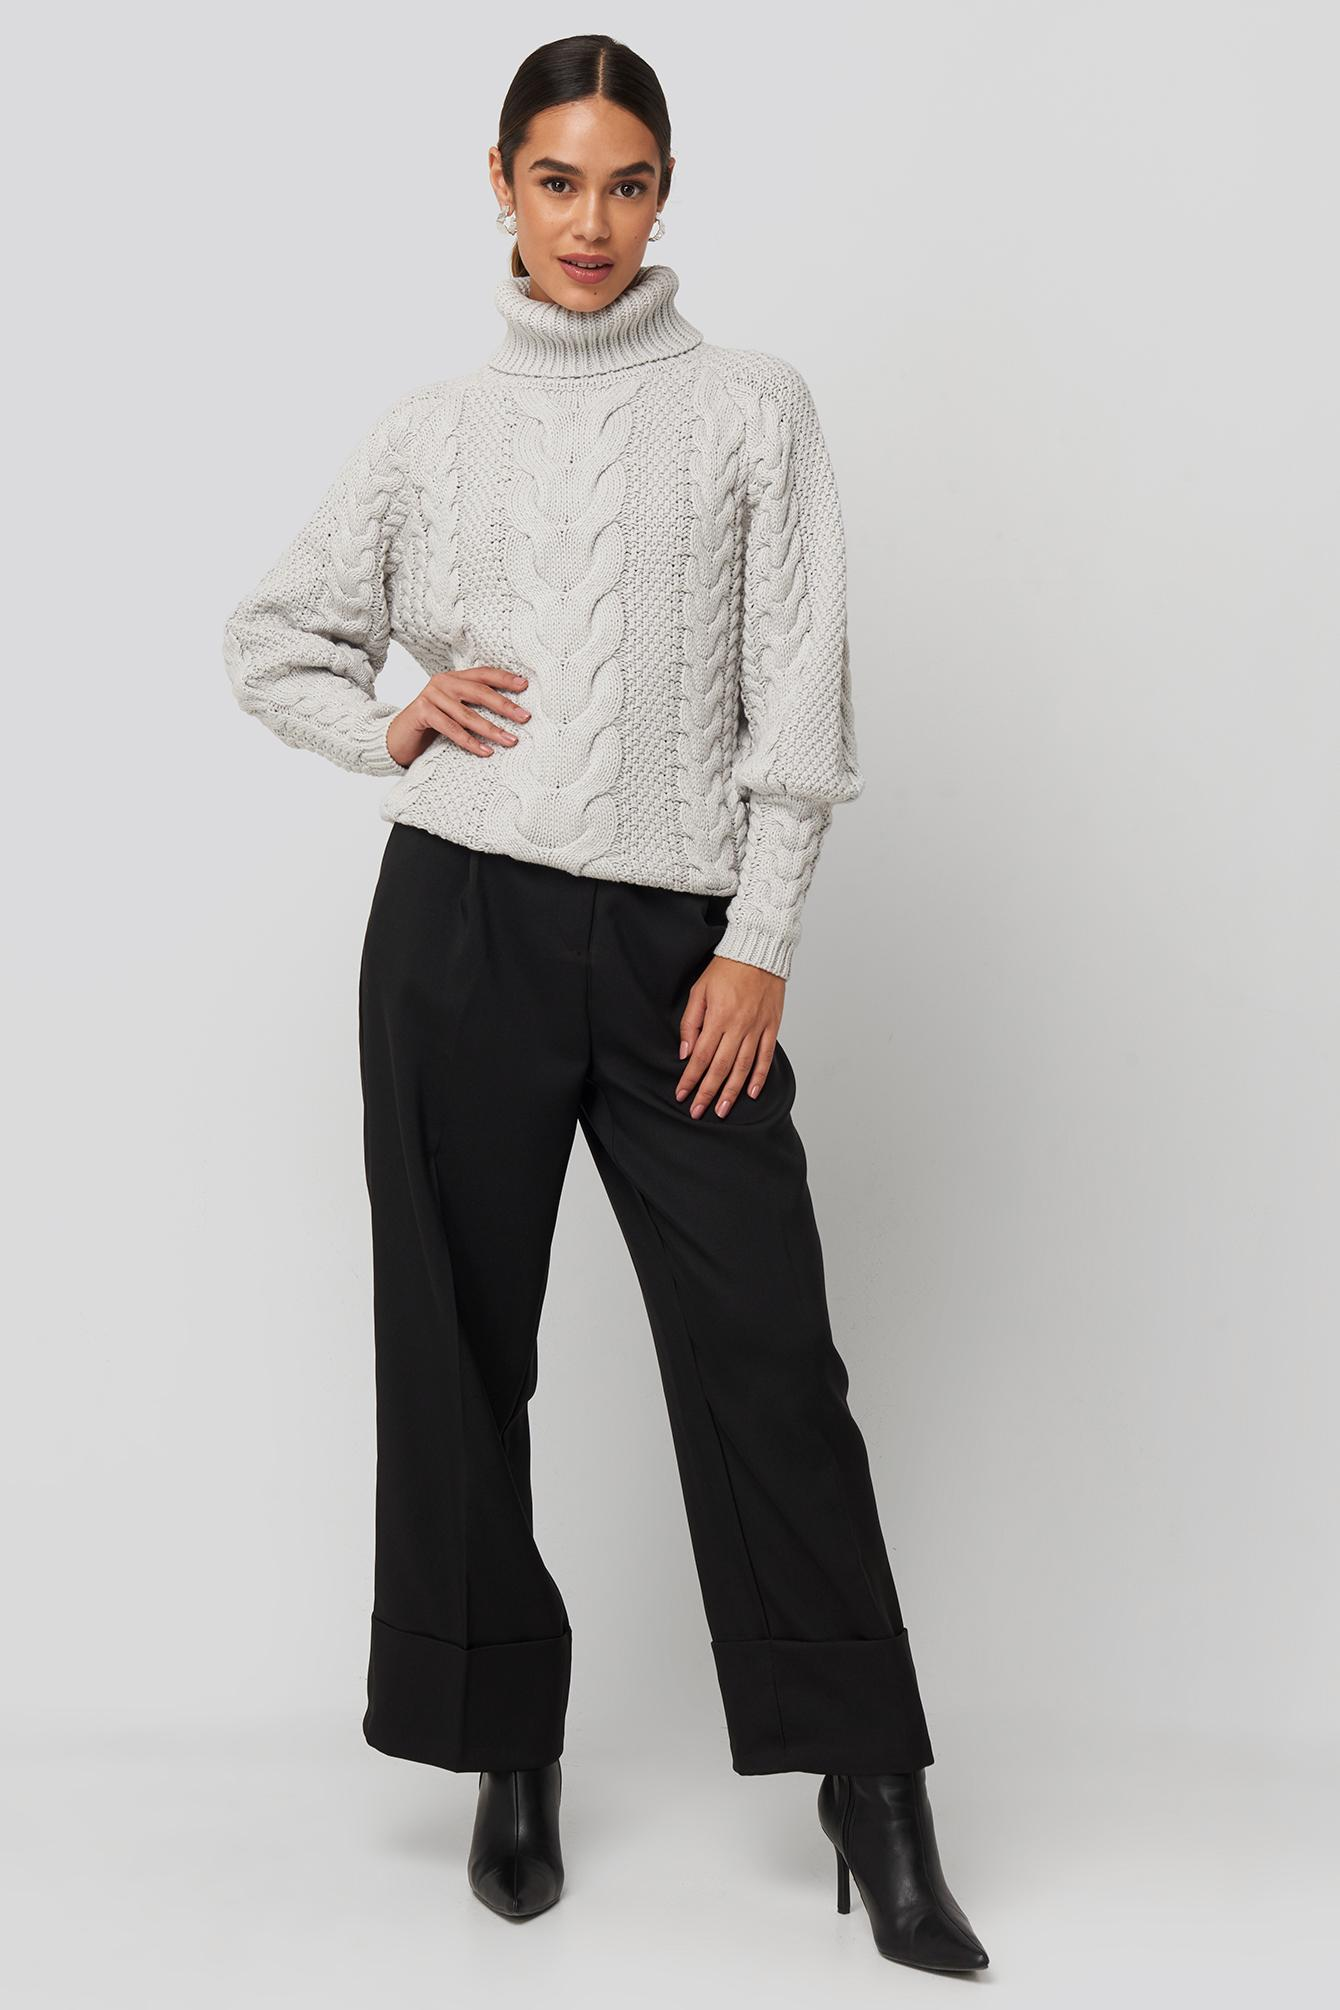 High Neck Cable Knitted Ribbed Sleeve Sweater Coton NA-KD en coloris Gris